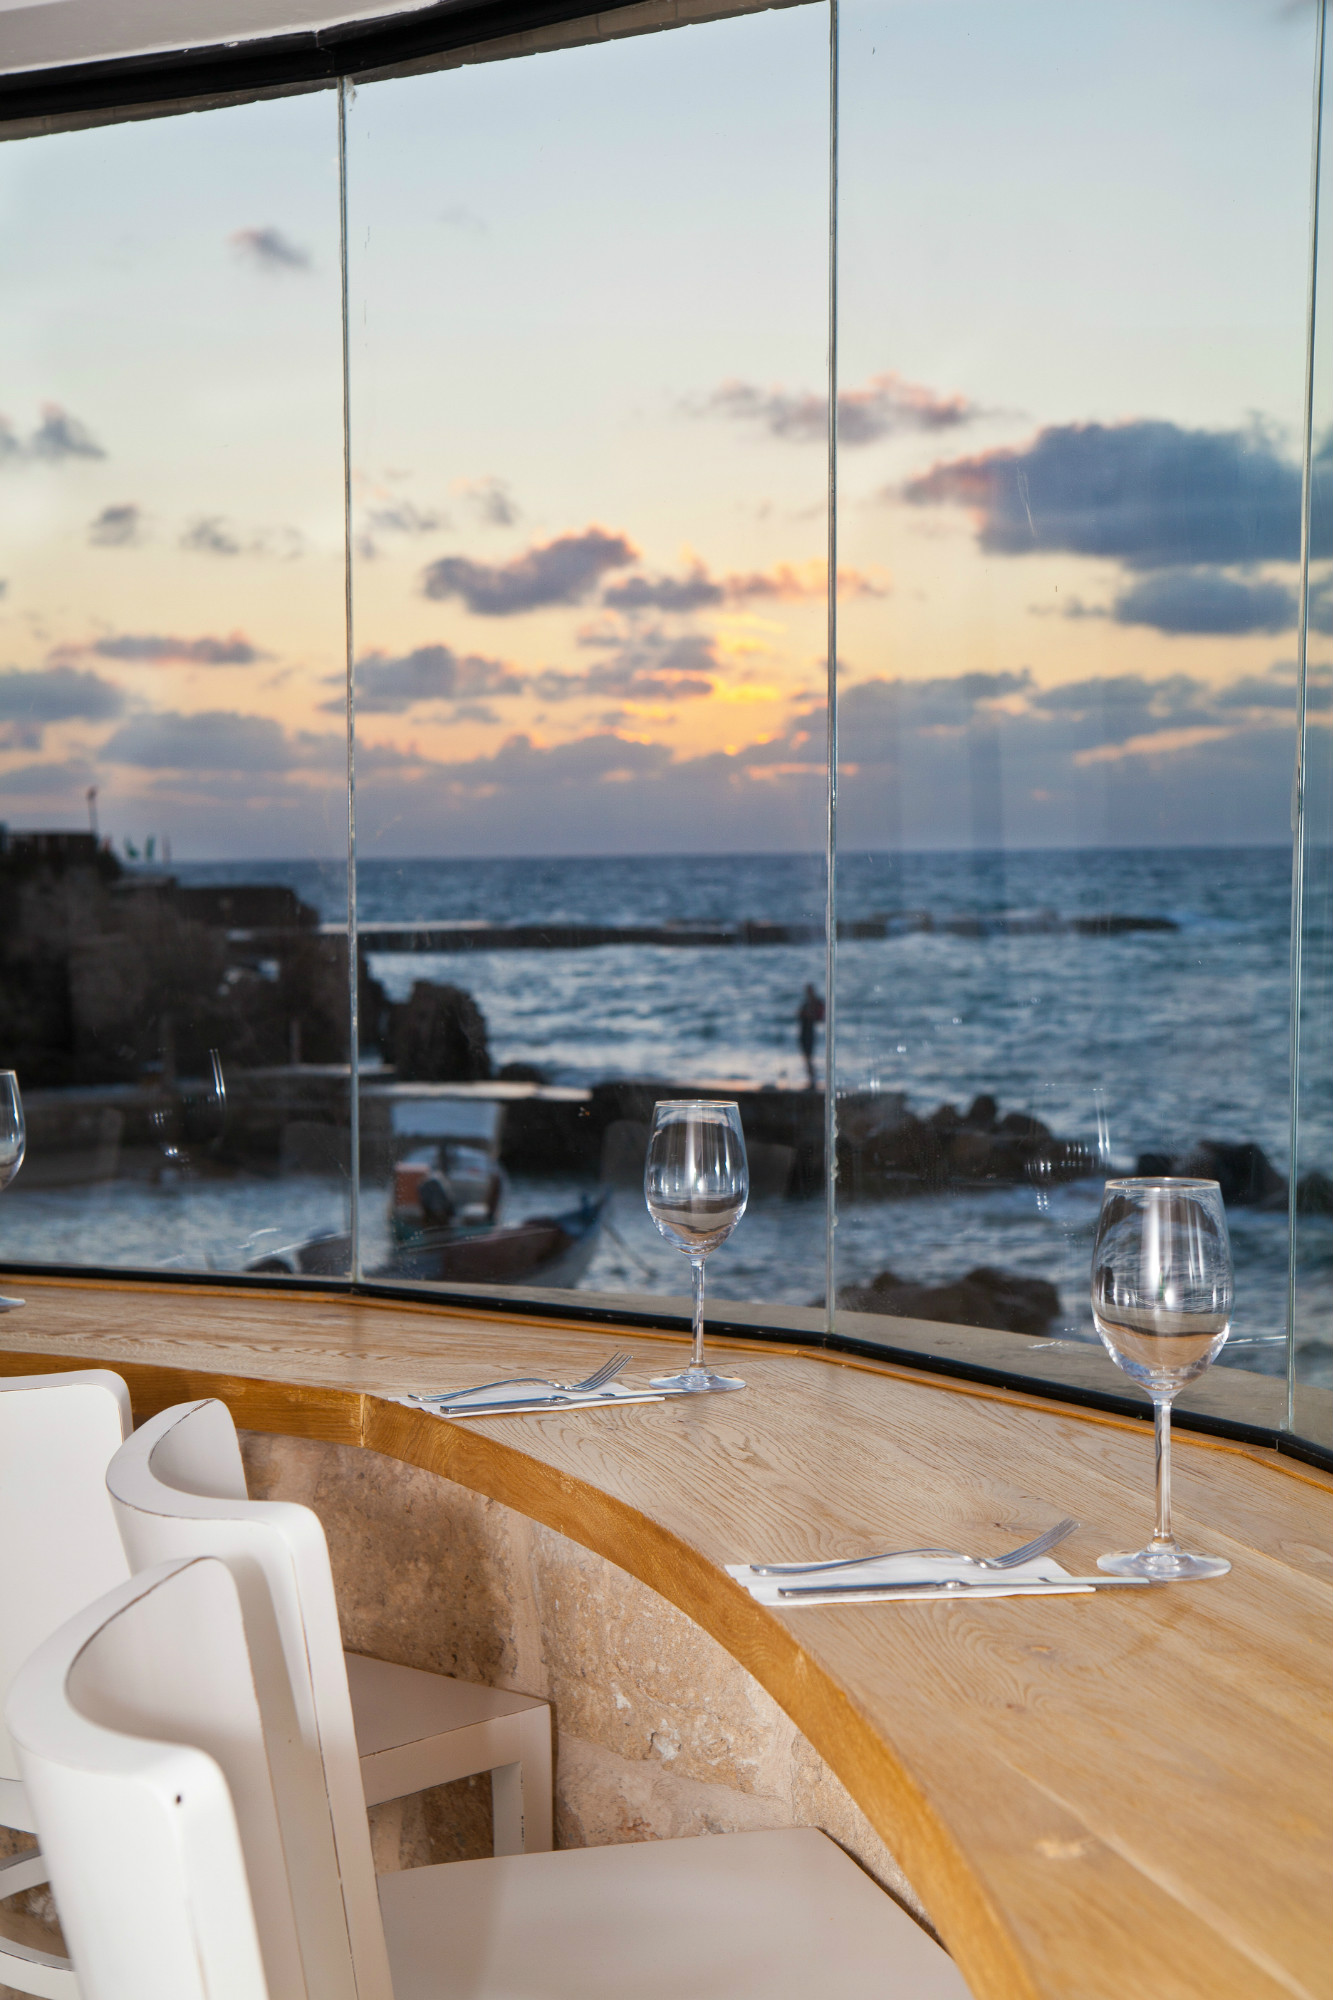 View from Helena restaurant in Caesarea. Photo: courtesy